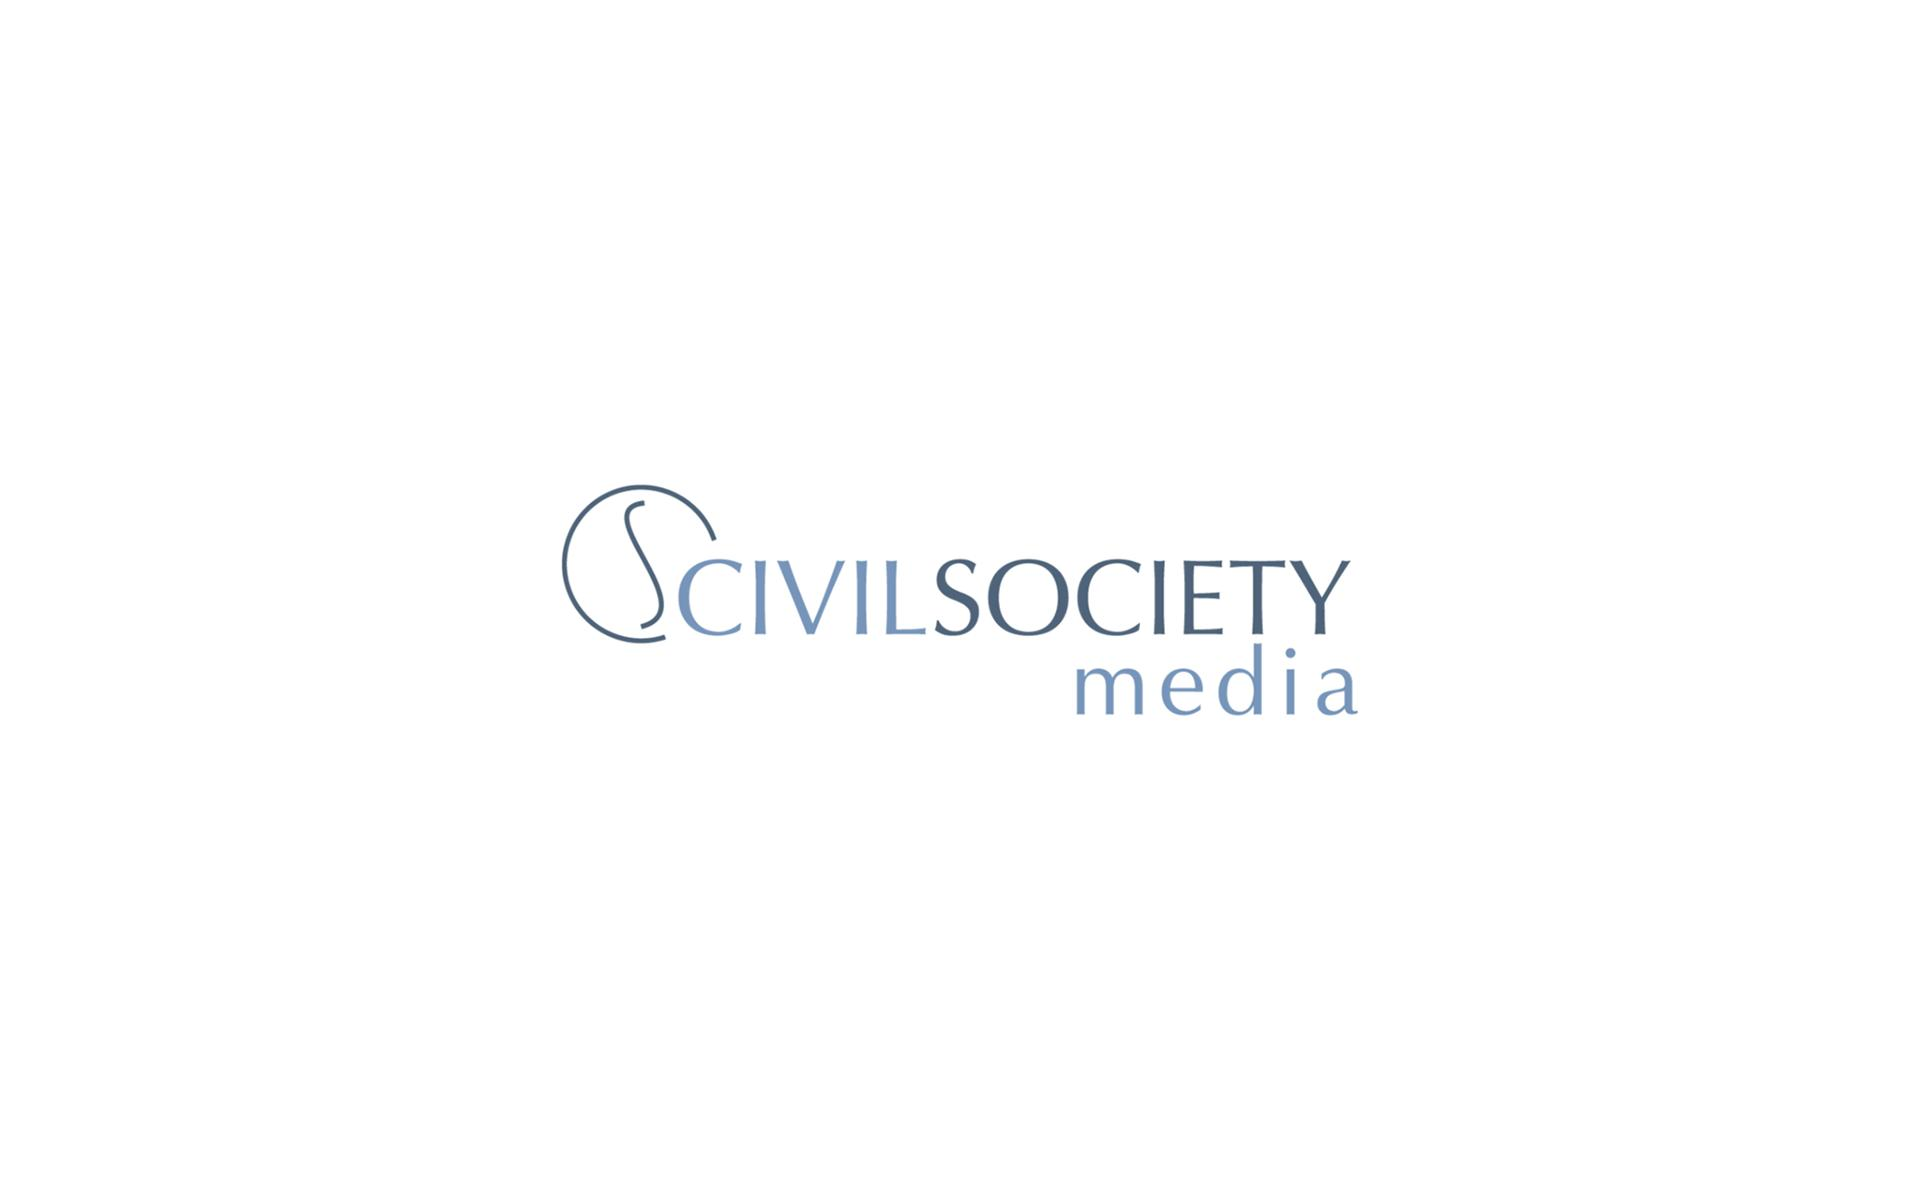 Civil Society Media Events screenshot 7